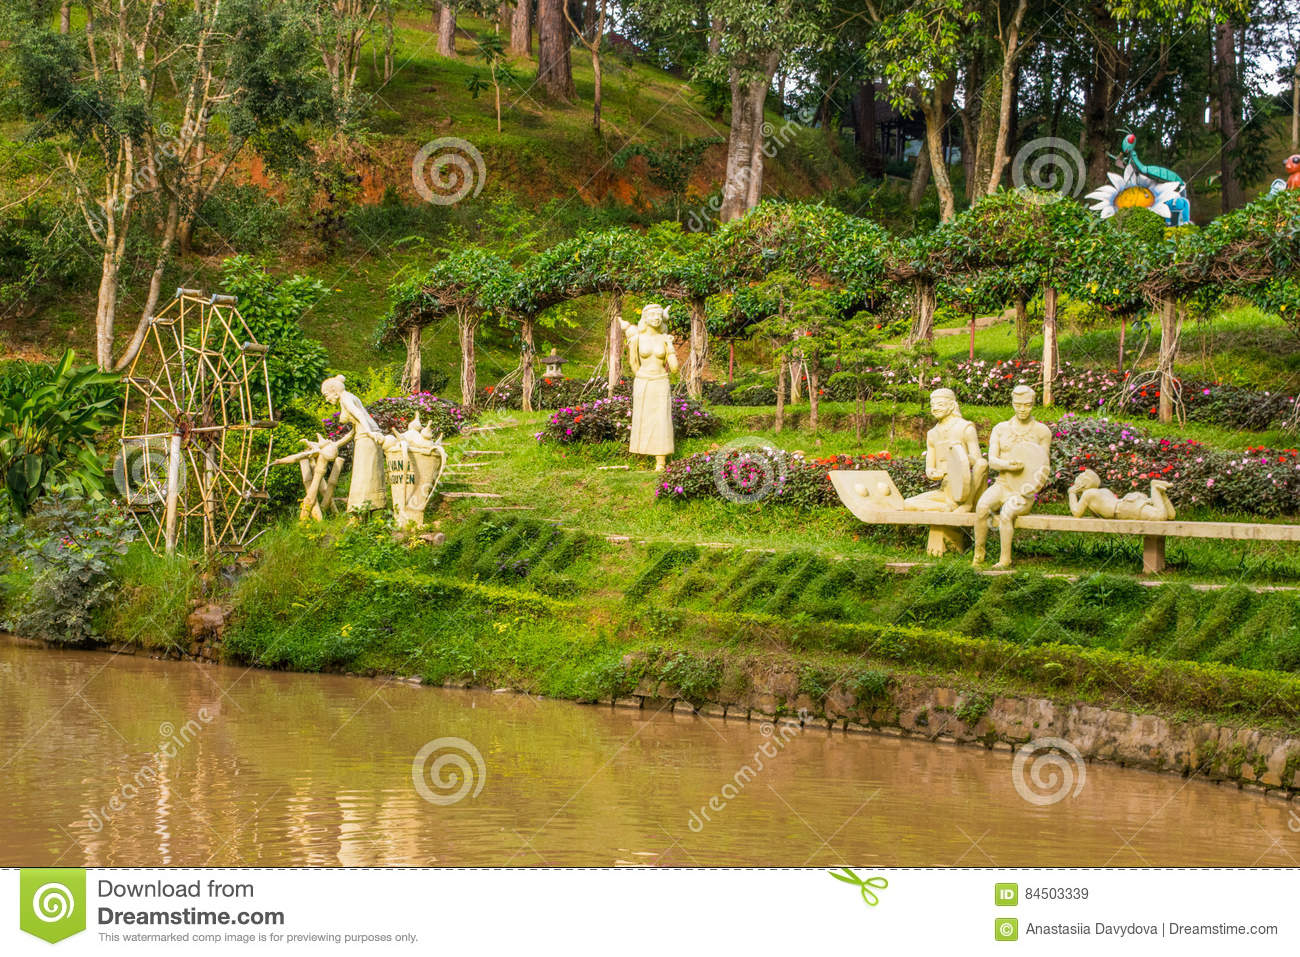 Attirant Download Landscape Design Of Relax Tropical Garden With Statues On A River  Side Editorial Stock Image